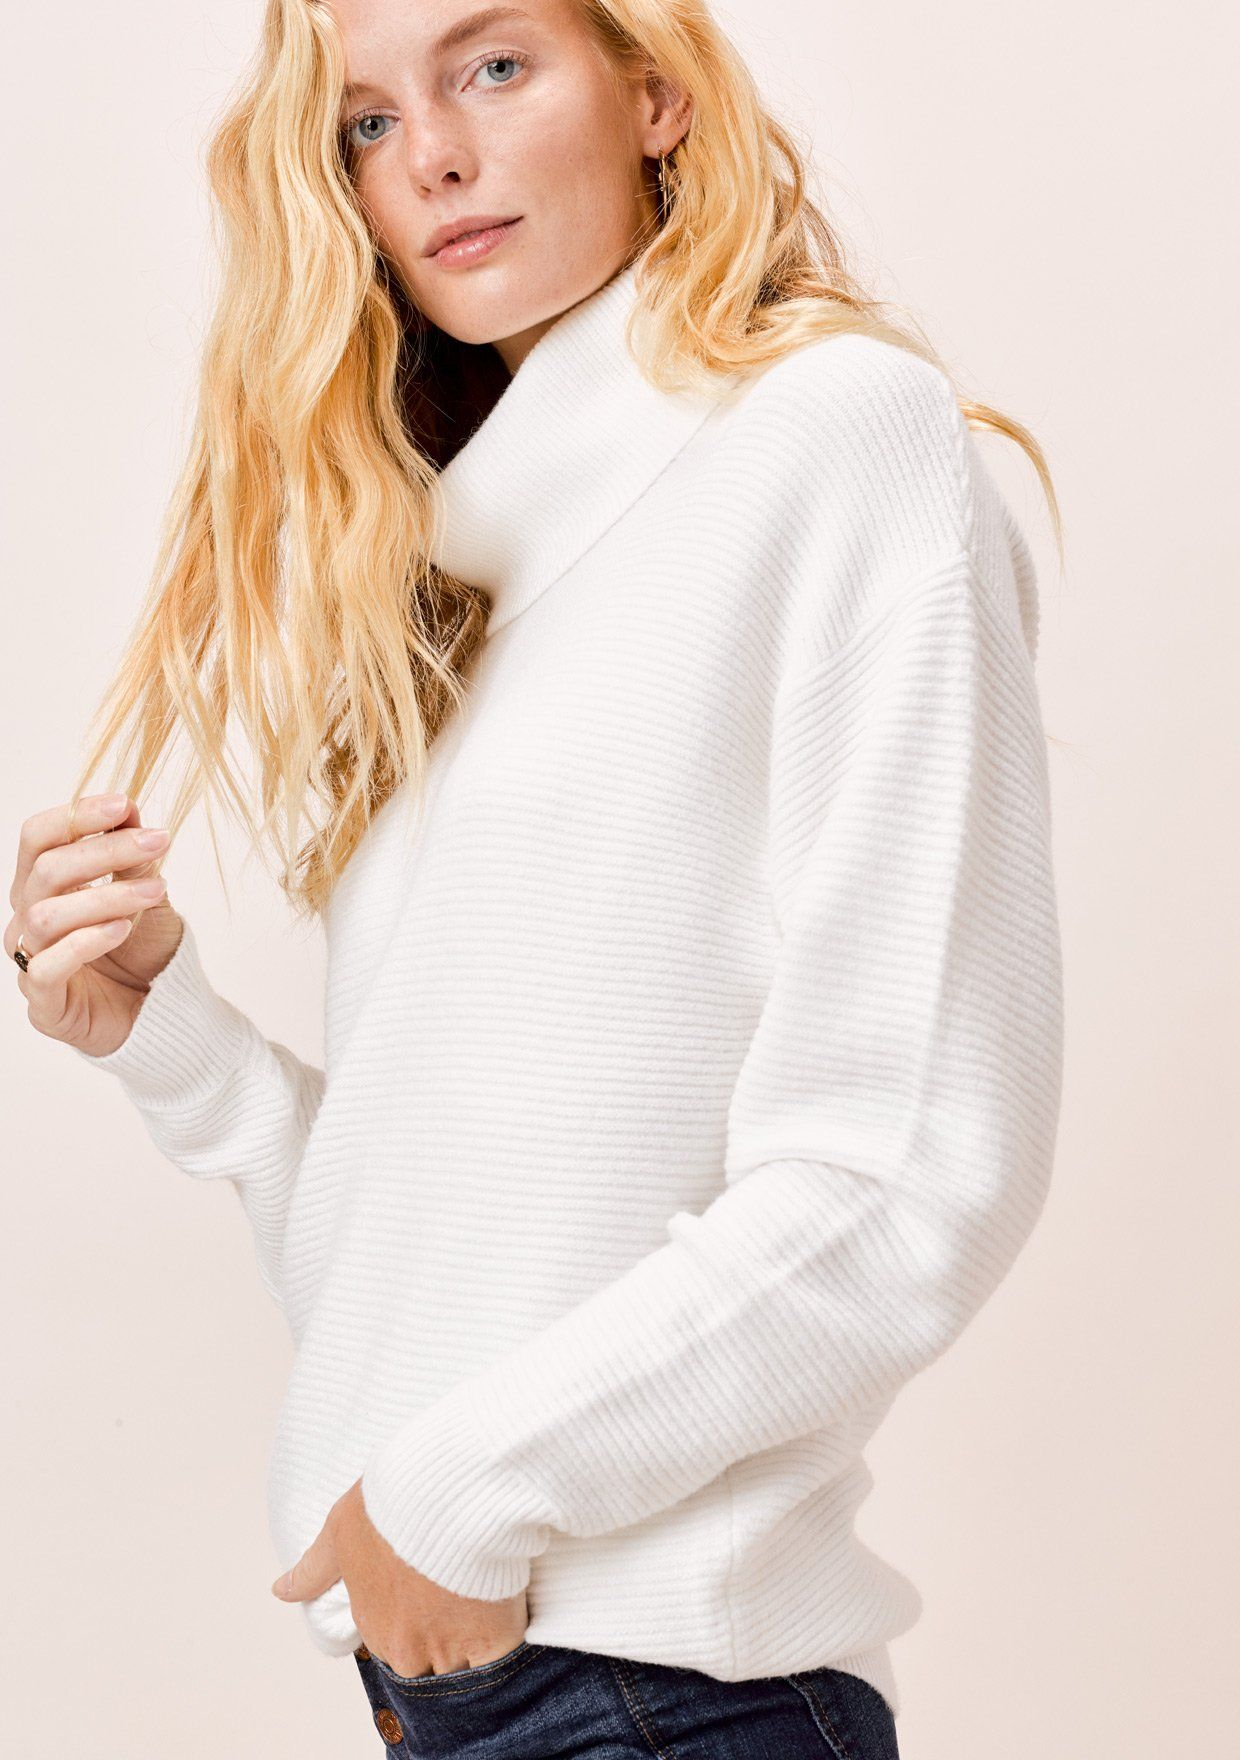 [Color: Ivory] Lovestitch Ivory Relaxed Fit Ribbed Turtleneck Sweater